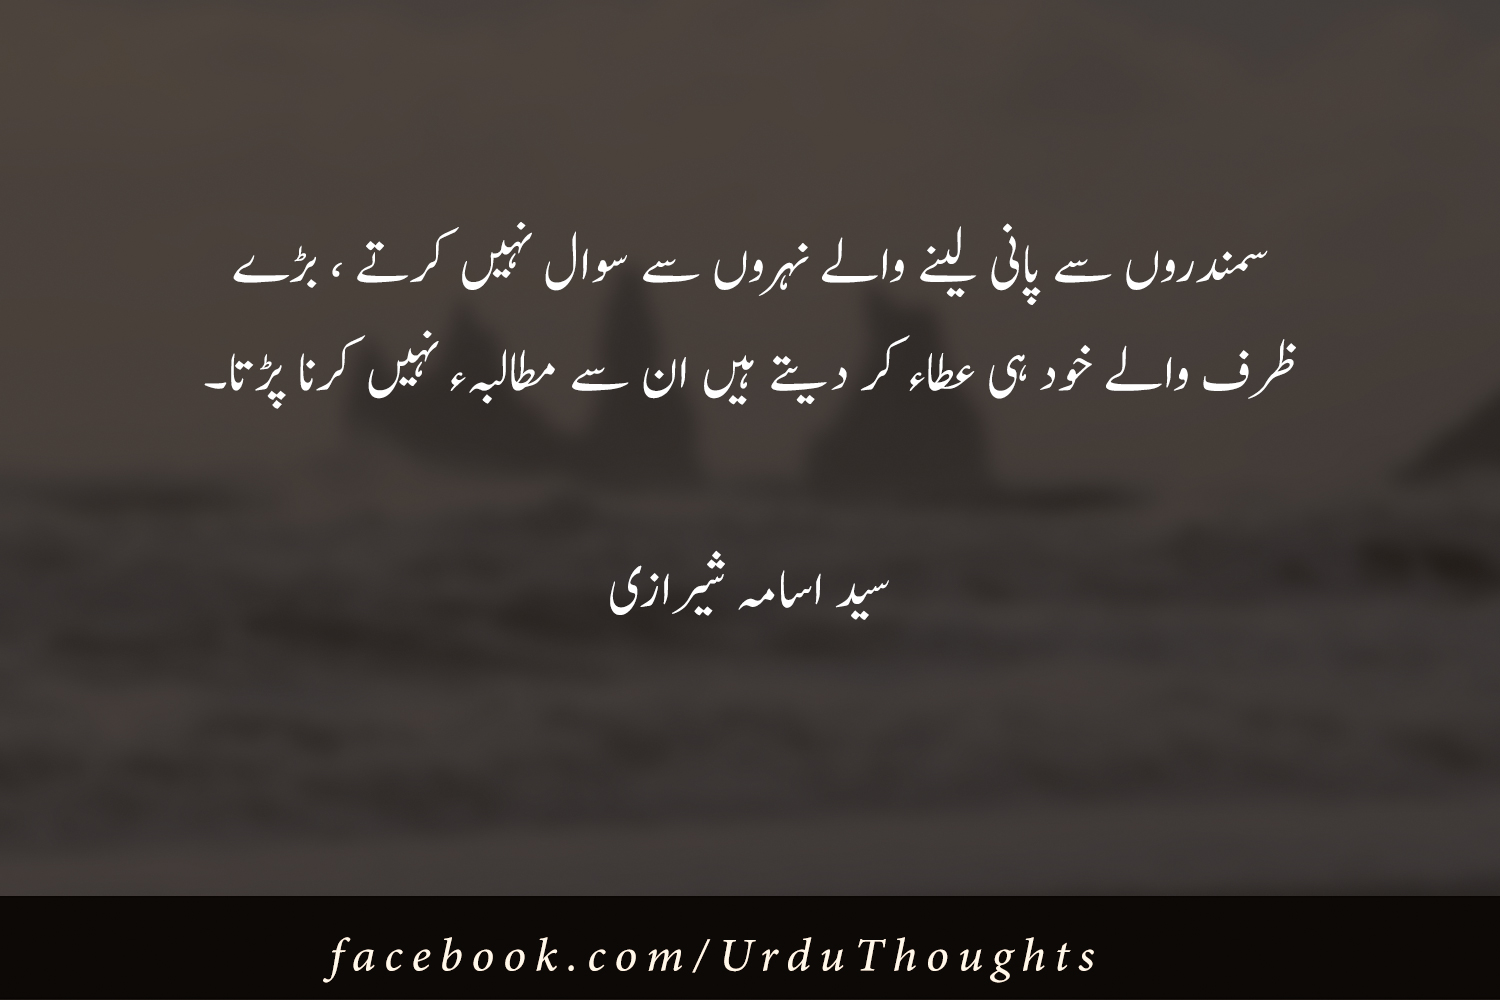 Best Urdu Quotes Images With Black Background - Urdu Thoughts